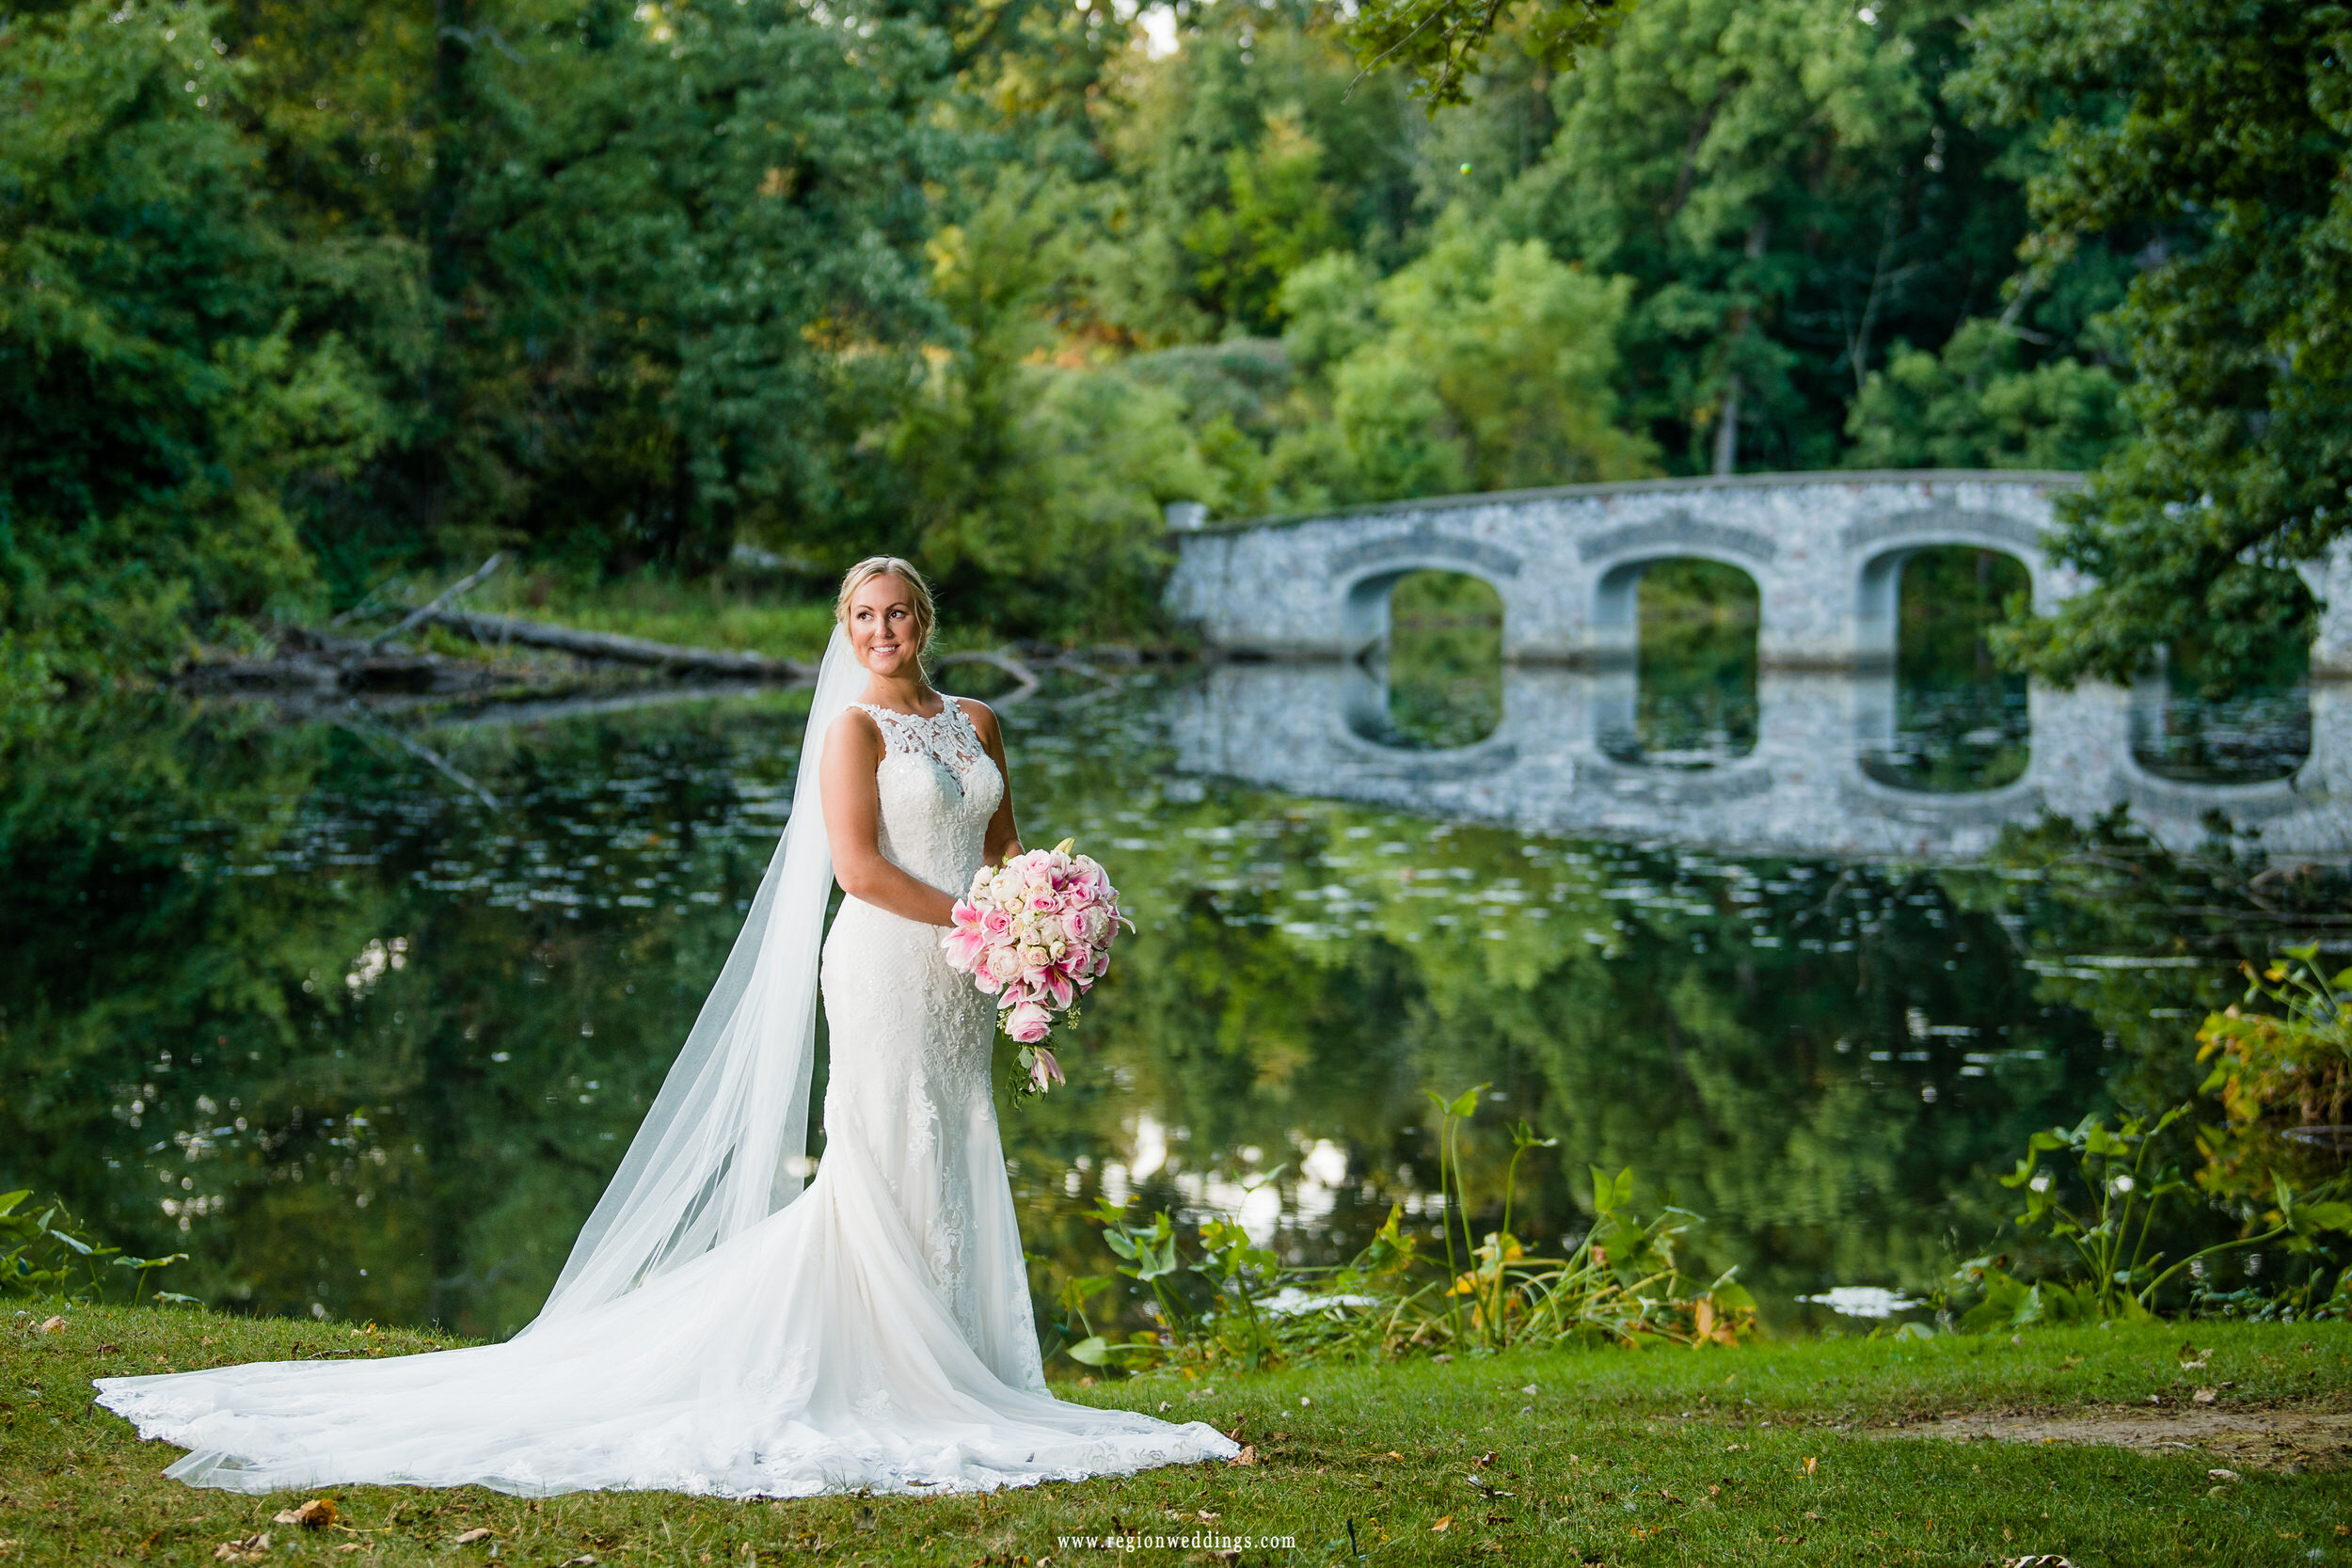 The bride standing near the river as the bridge reflects off the water.